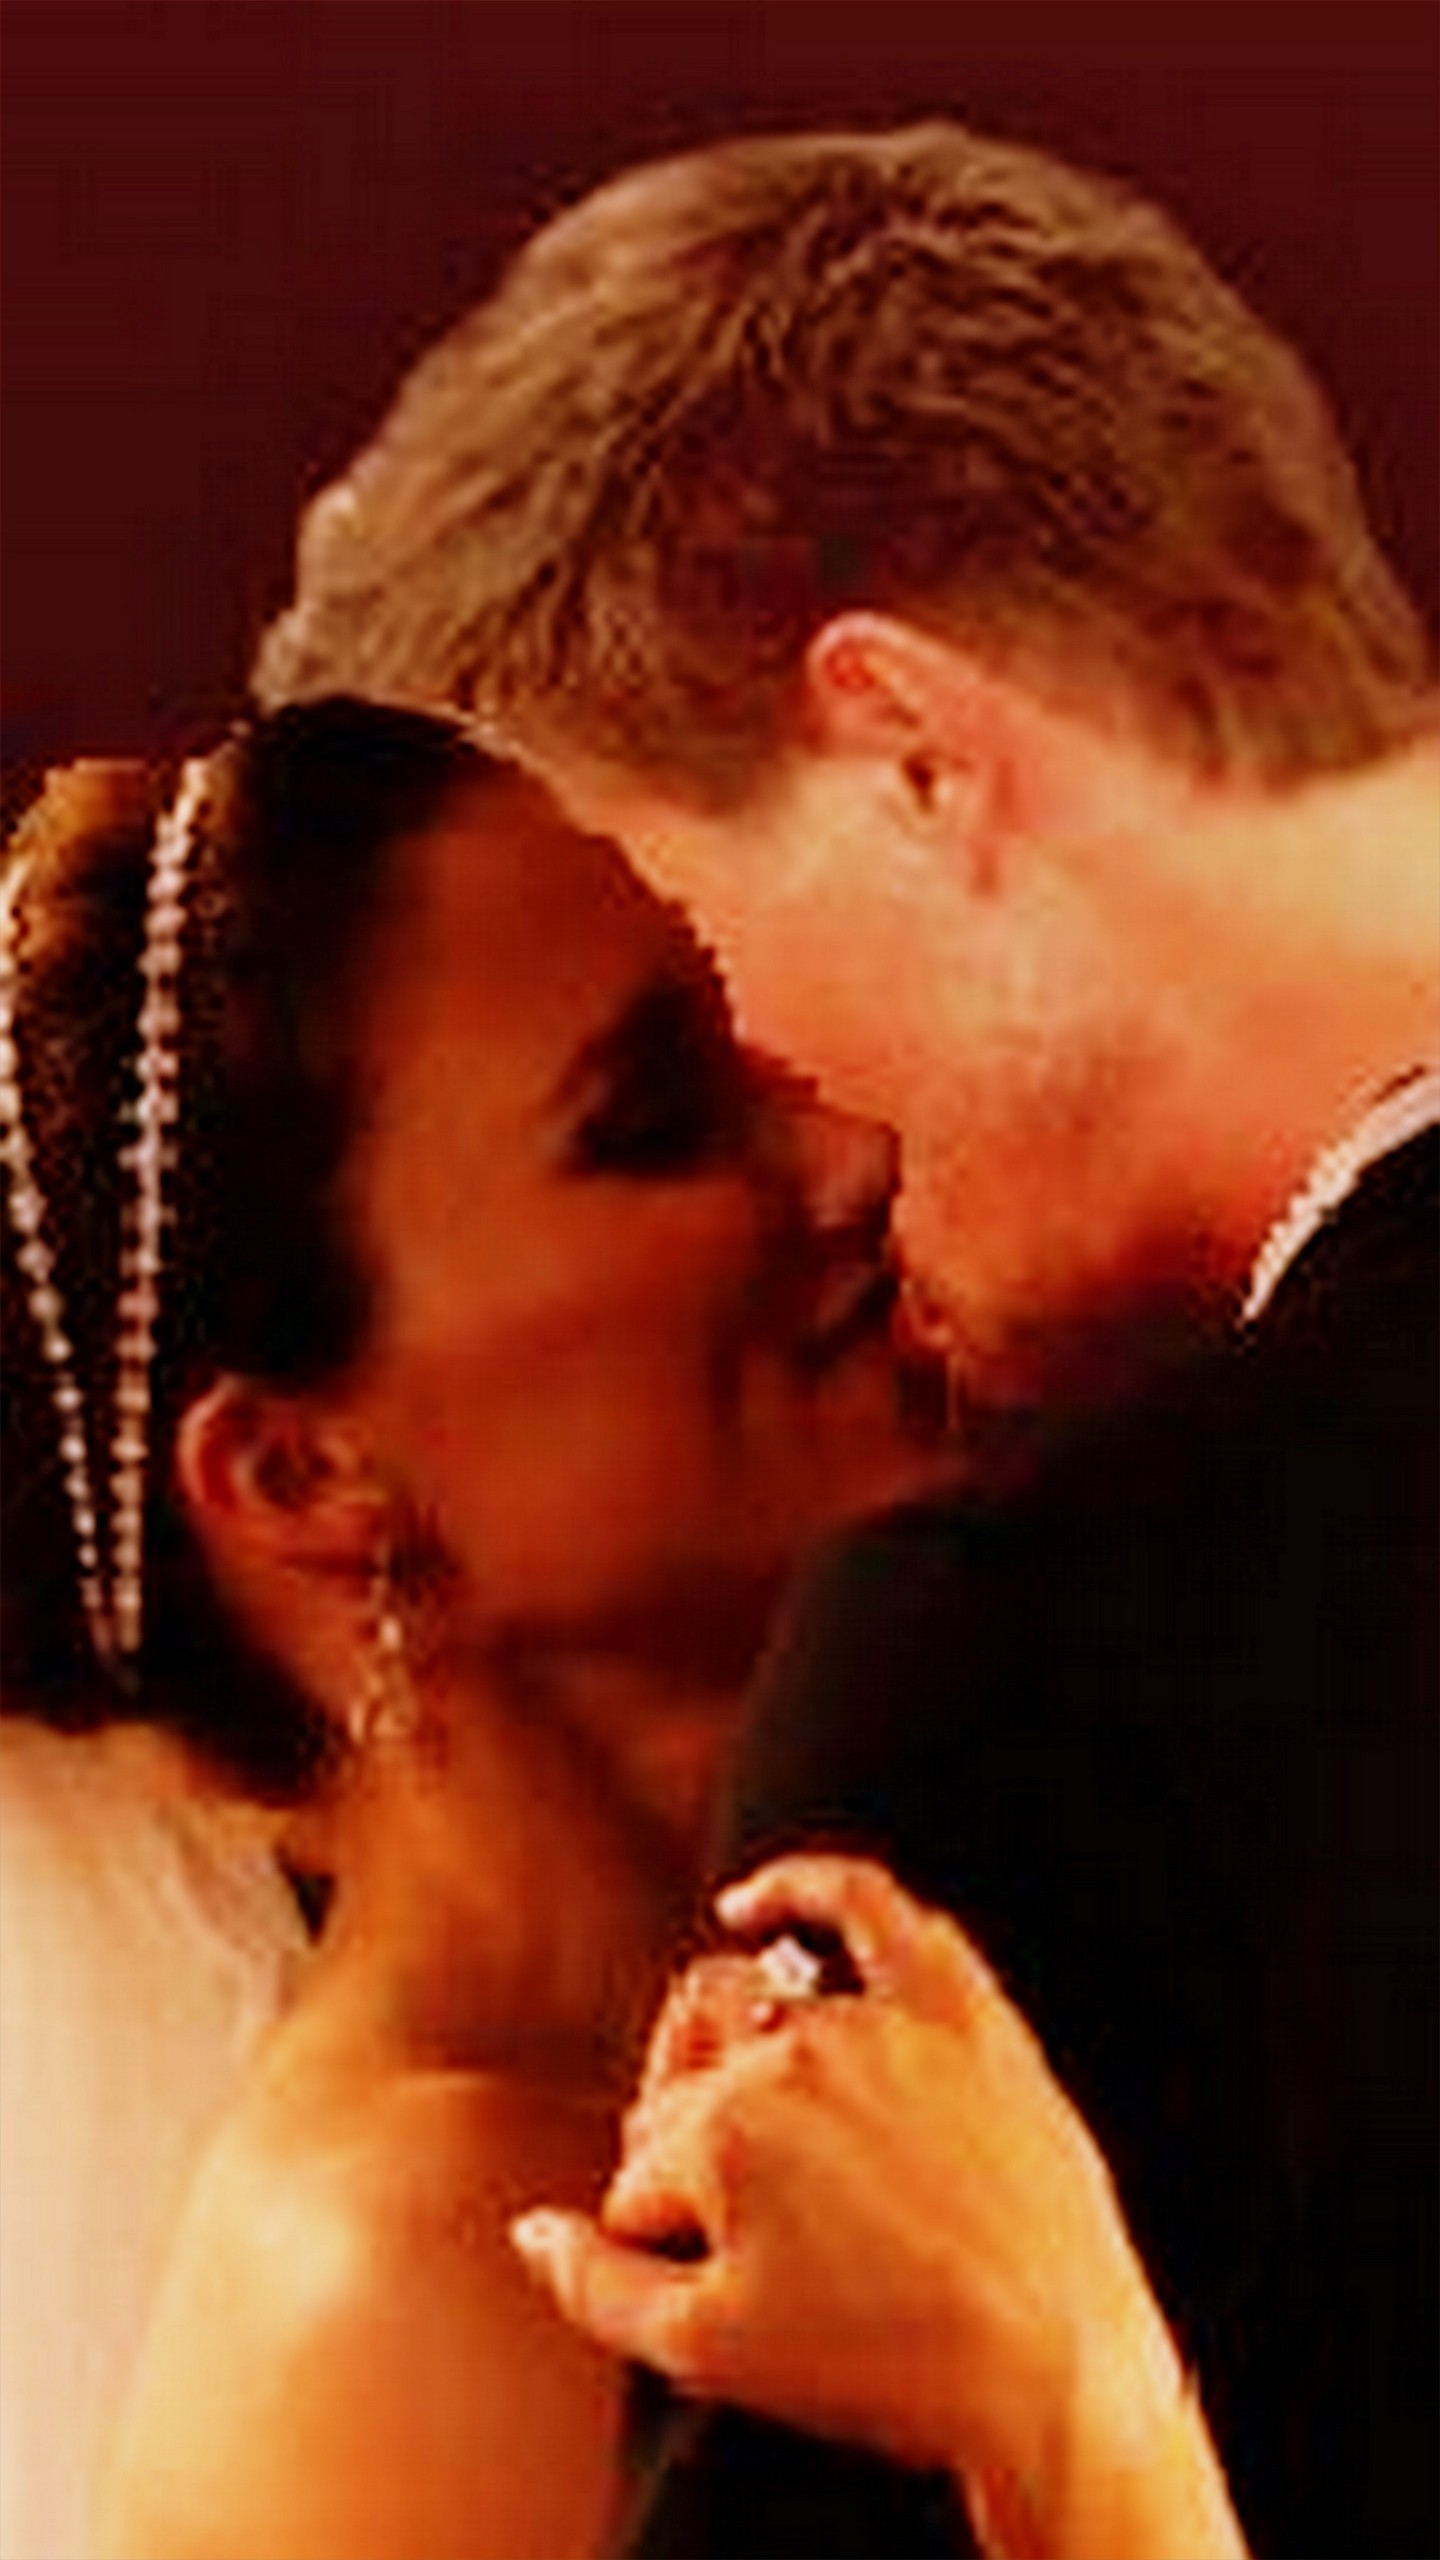 Brucas marriage